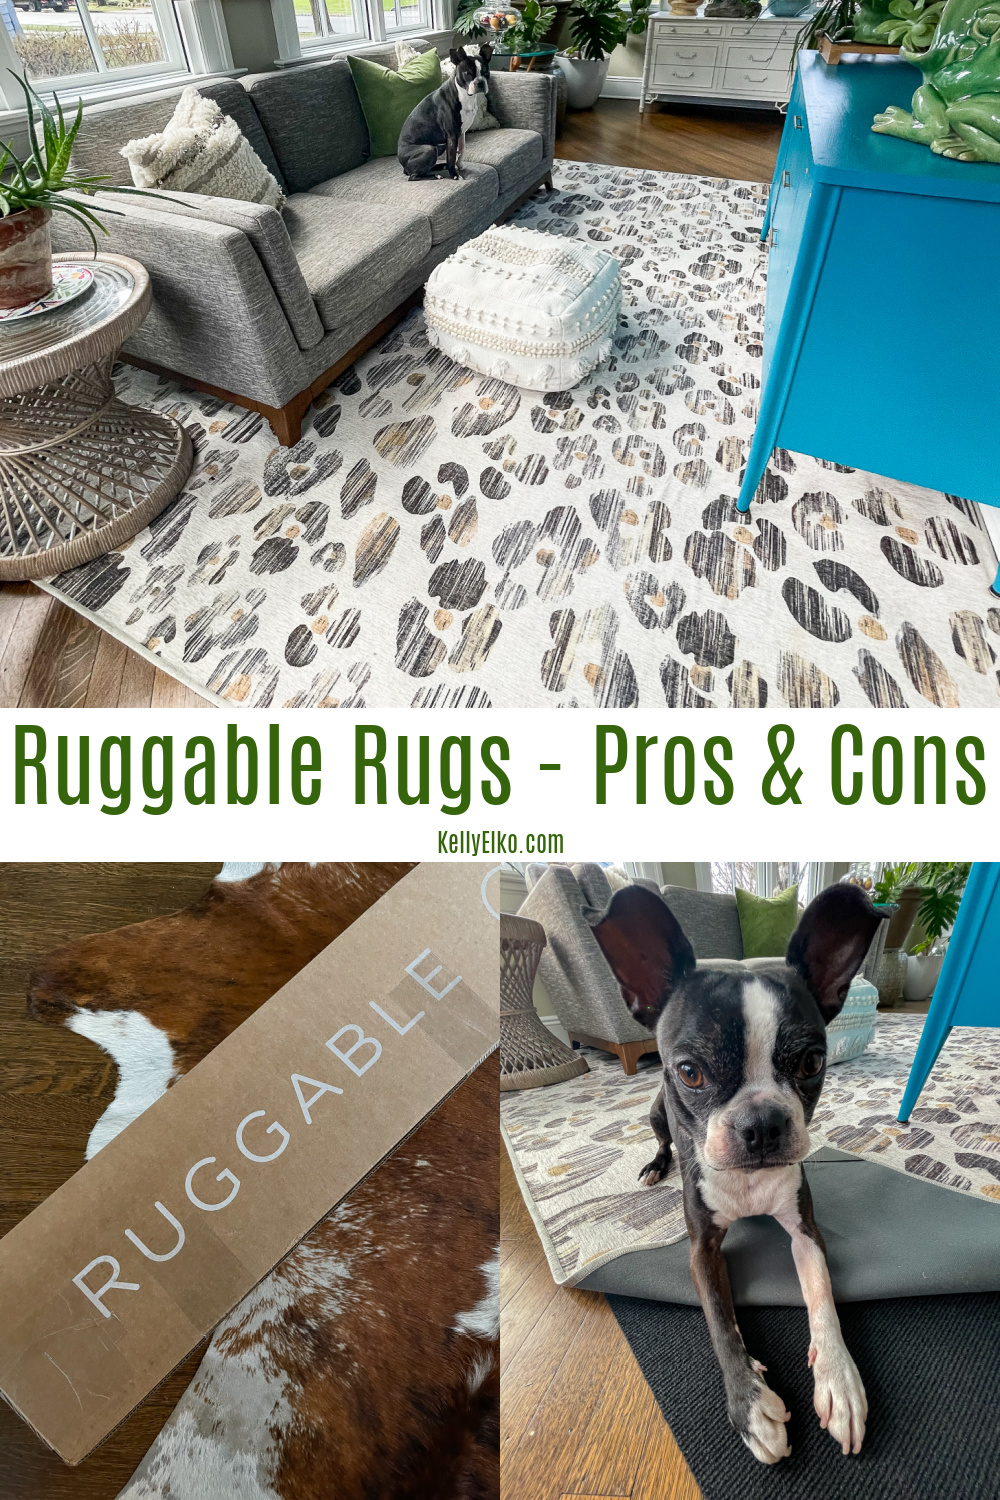 Ruggable Rugs Pros and Cons - get all the pros and cons of owning this machine washable rug kellyelko.com